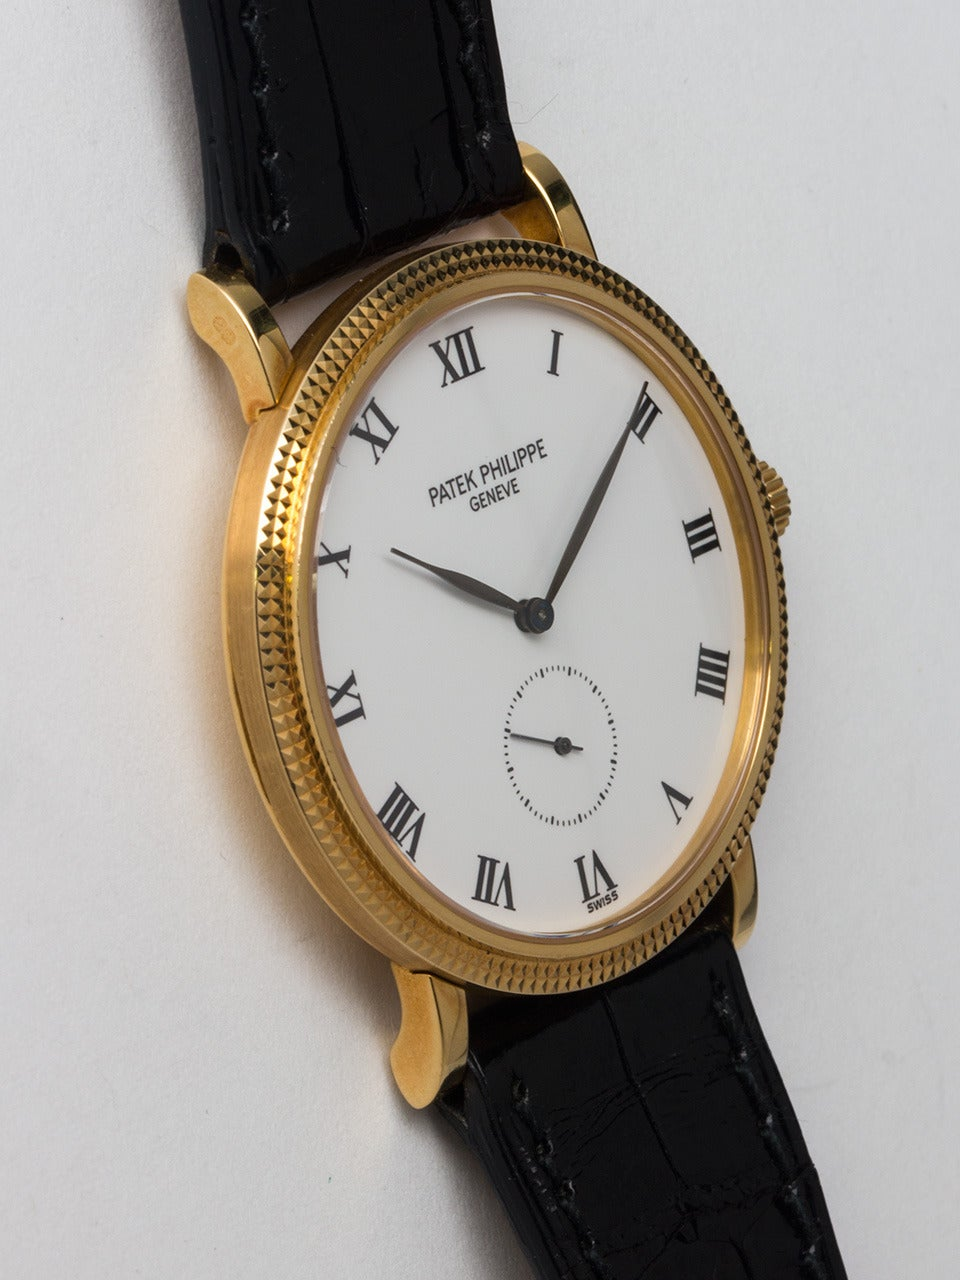 Patek Philippe 18K Yellow Gold Calatrava Wristwatch, Ref. 3919, circa 1990s. Hobnail bezel, calatrava-logo crown, 33mm diameter case with white dial, Roman numerals and leaf hands. 18-jewel manual-wind movement with subsidiary seconds. Classic dress